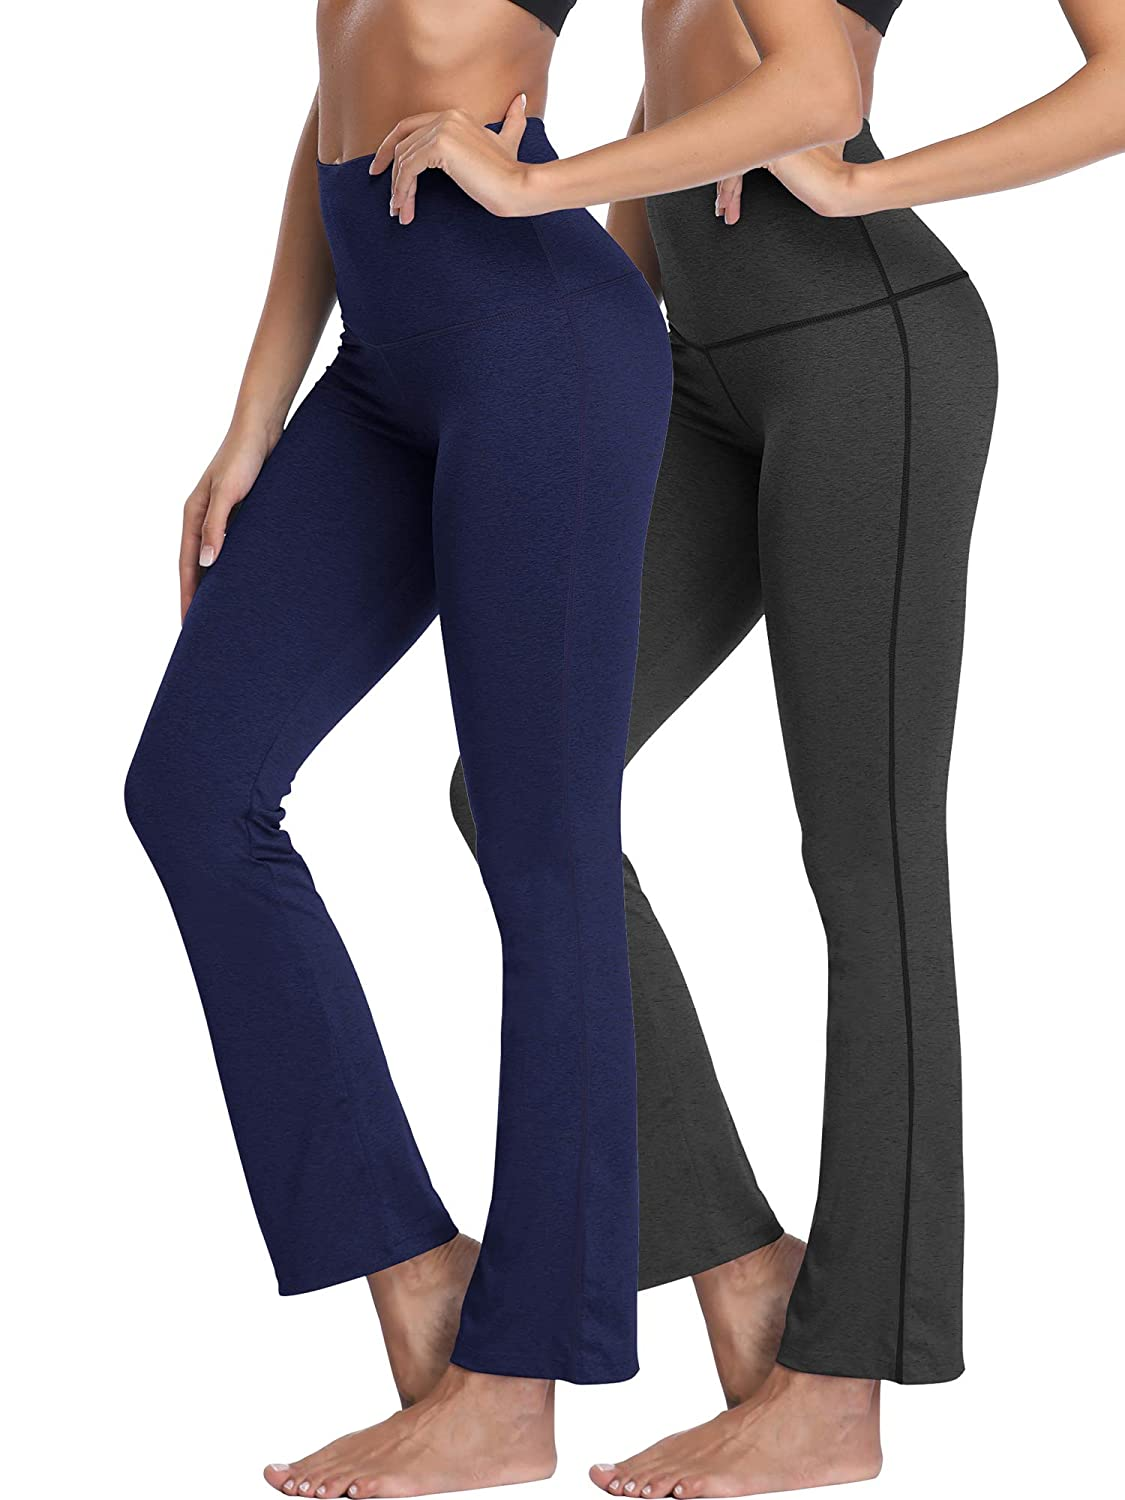 05  Black & Navy blueee, Pack of 2 XX-Large Cadmus Womens High Waisted Boot Cut Pants Workout Leggings with Pocket